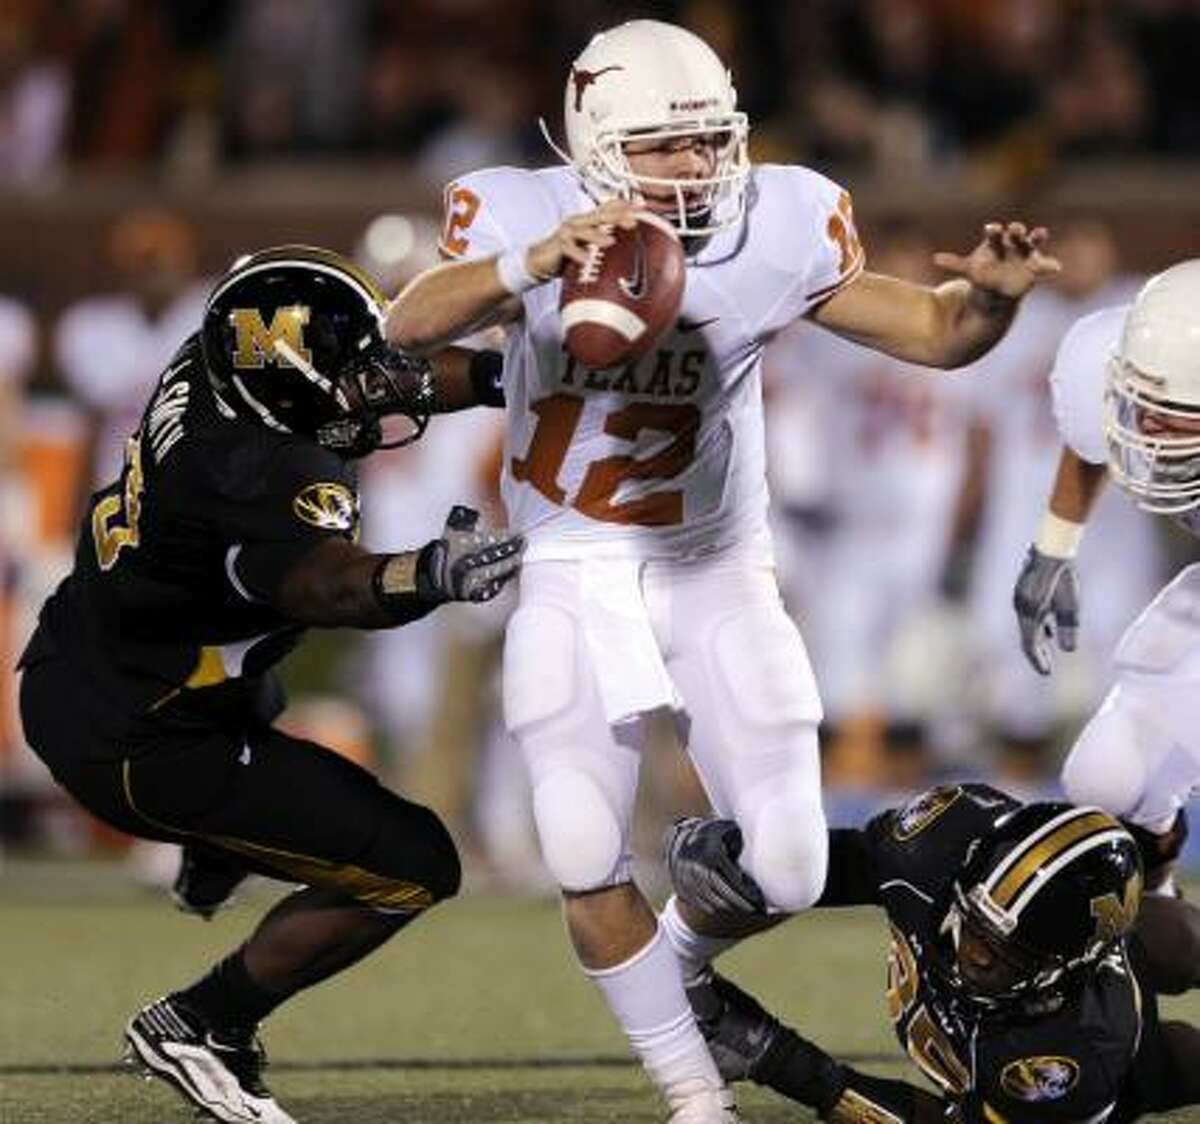 Texas quarterback Colt McCoy, center, tries to avoid Missouri defenders Jacquies Smith, left, and Aldon Smith, right, during the second quarter.